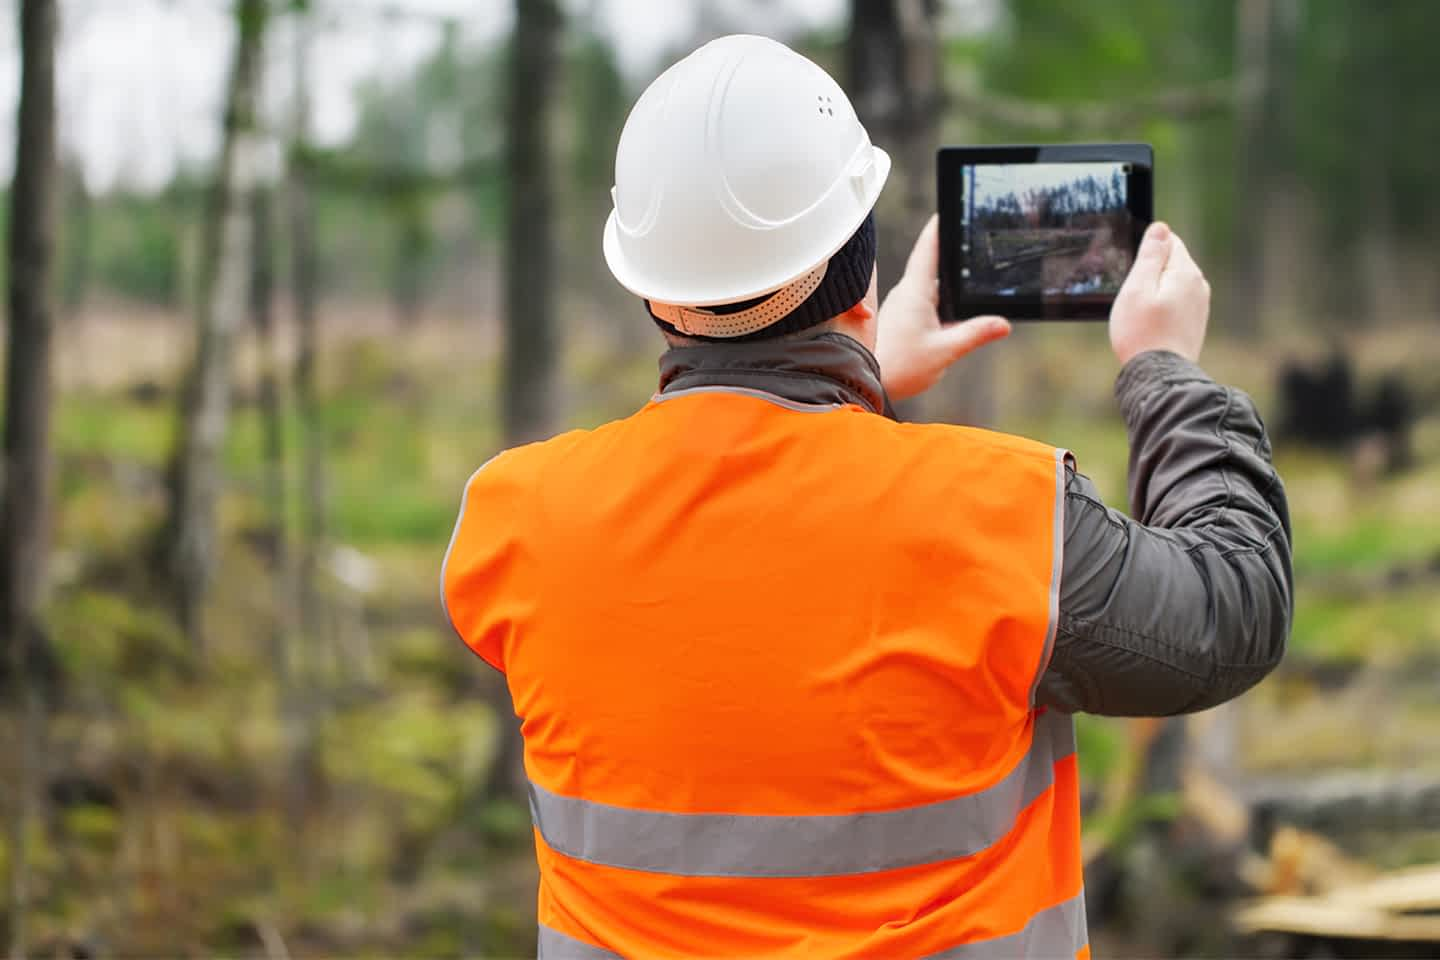 Meet health and safety HSE compliance requirements with forms2mobile